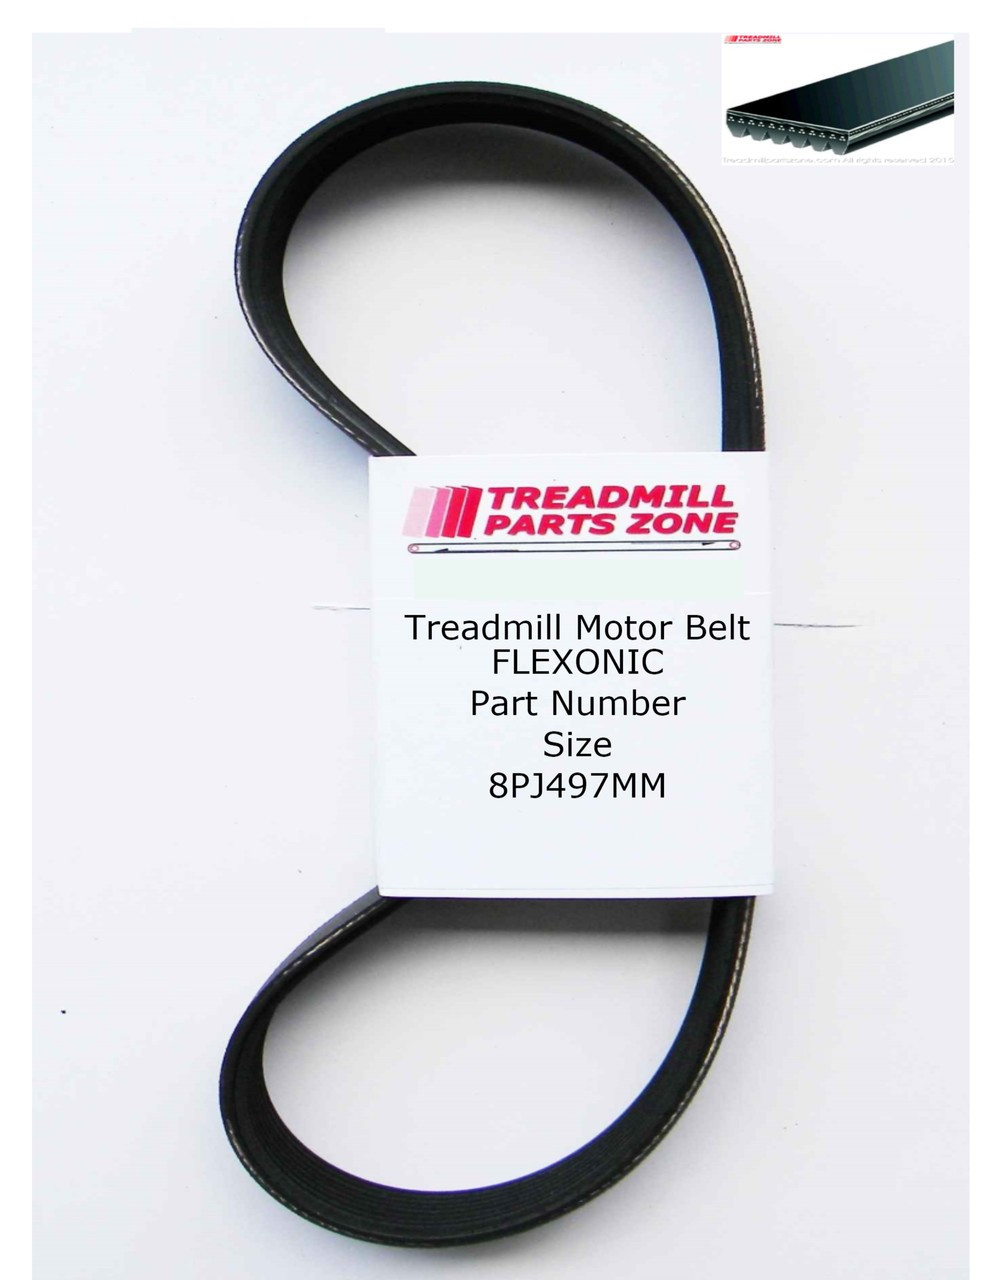 Treadmill Motor Belt Flexonic Part Number 8PJ497MM